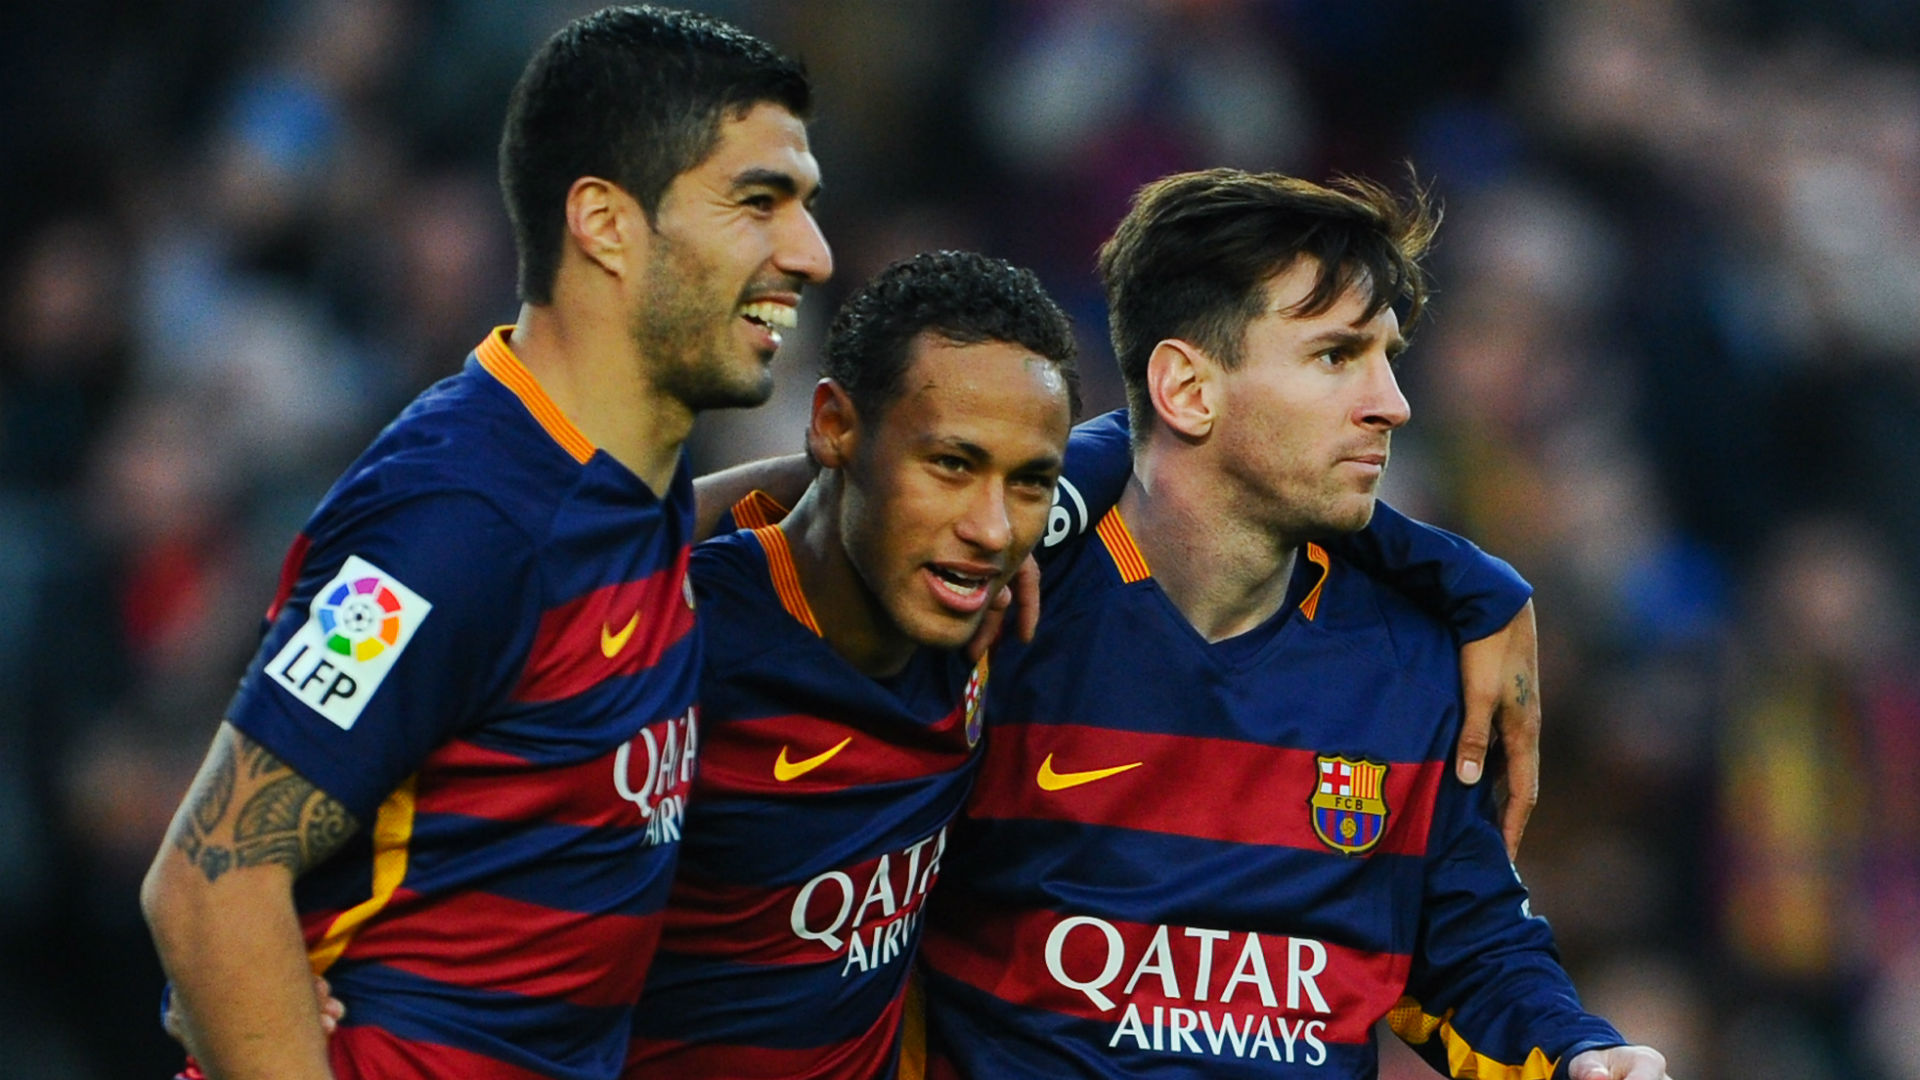 Barcelona news: Messi reveals WhatsApp group with